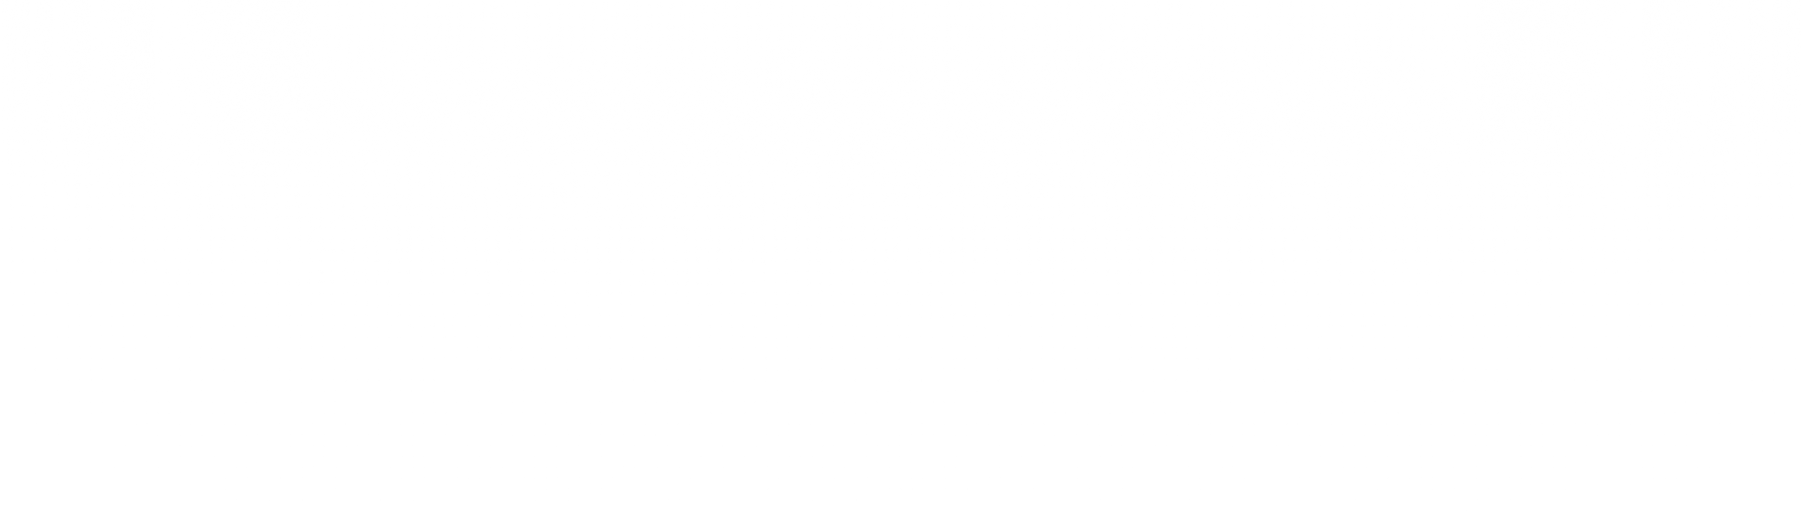 halftone_website_small_2_white.png